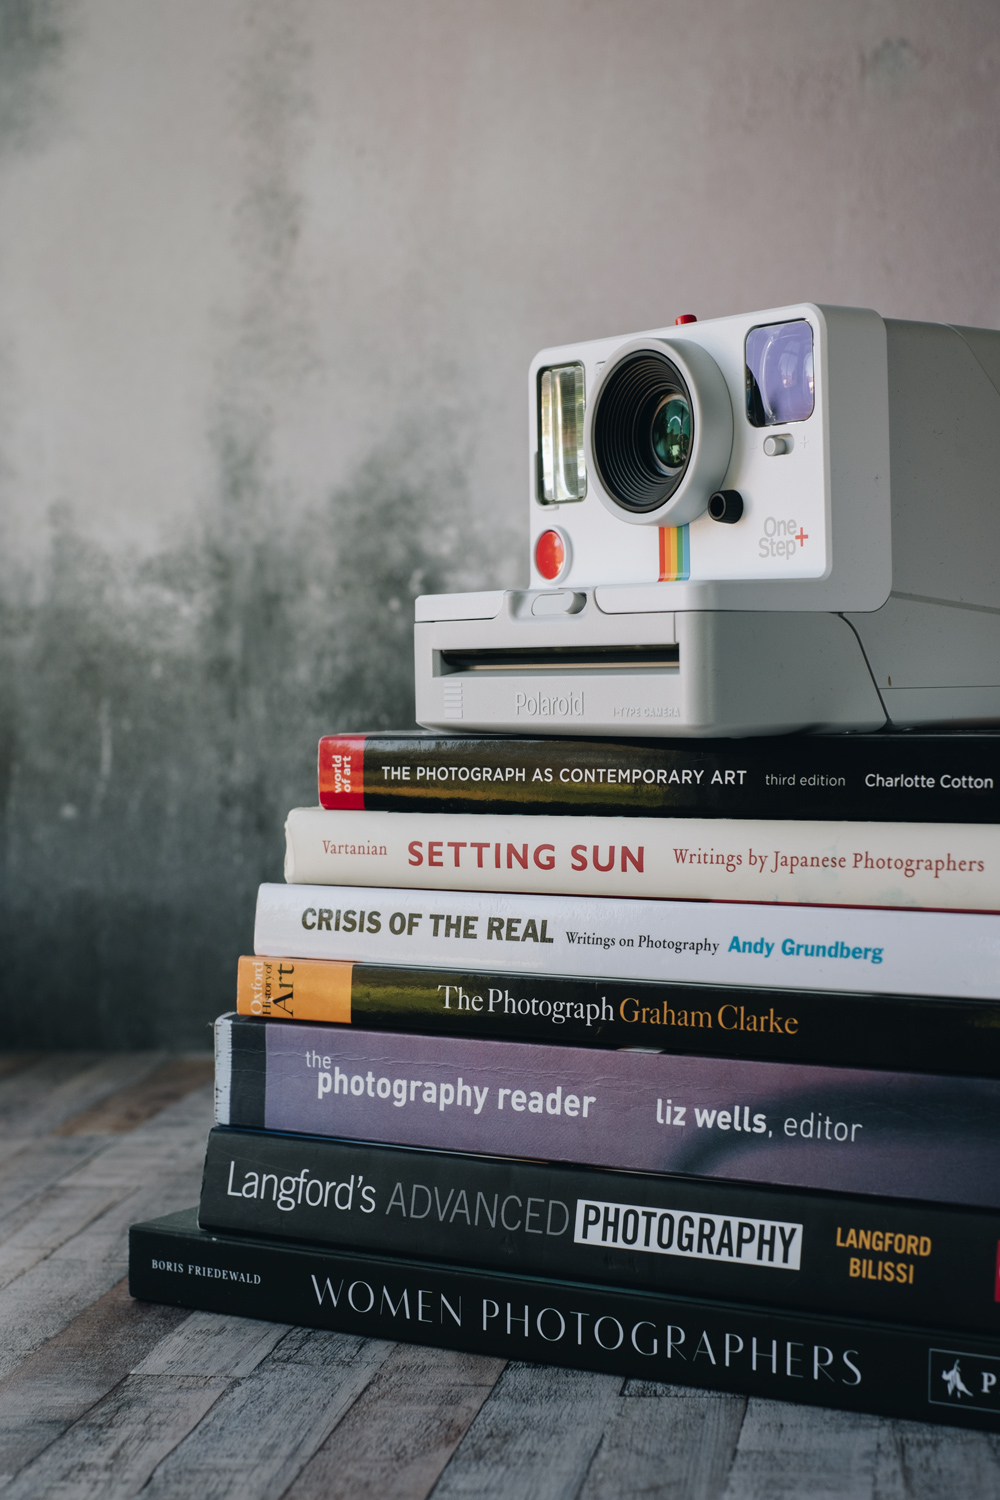 approaches to learning photography